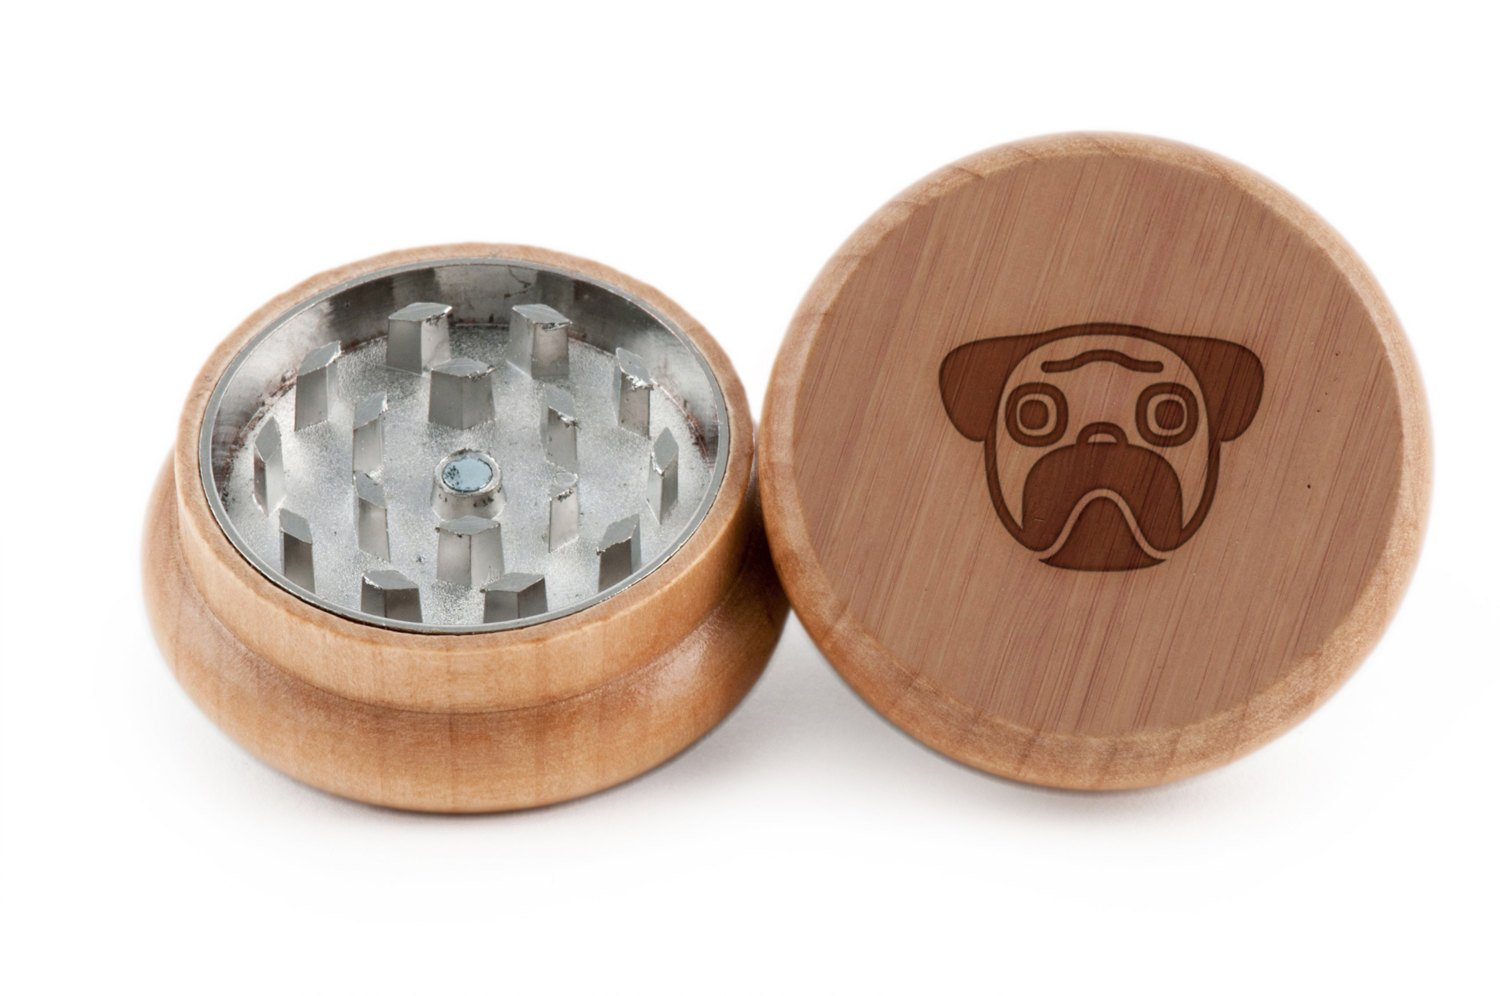 GRINDCANDY Spice And Herb Grinder - Laser Etched Pug Design - Manual Oak Pepper Grinder